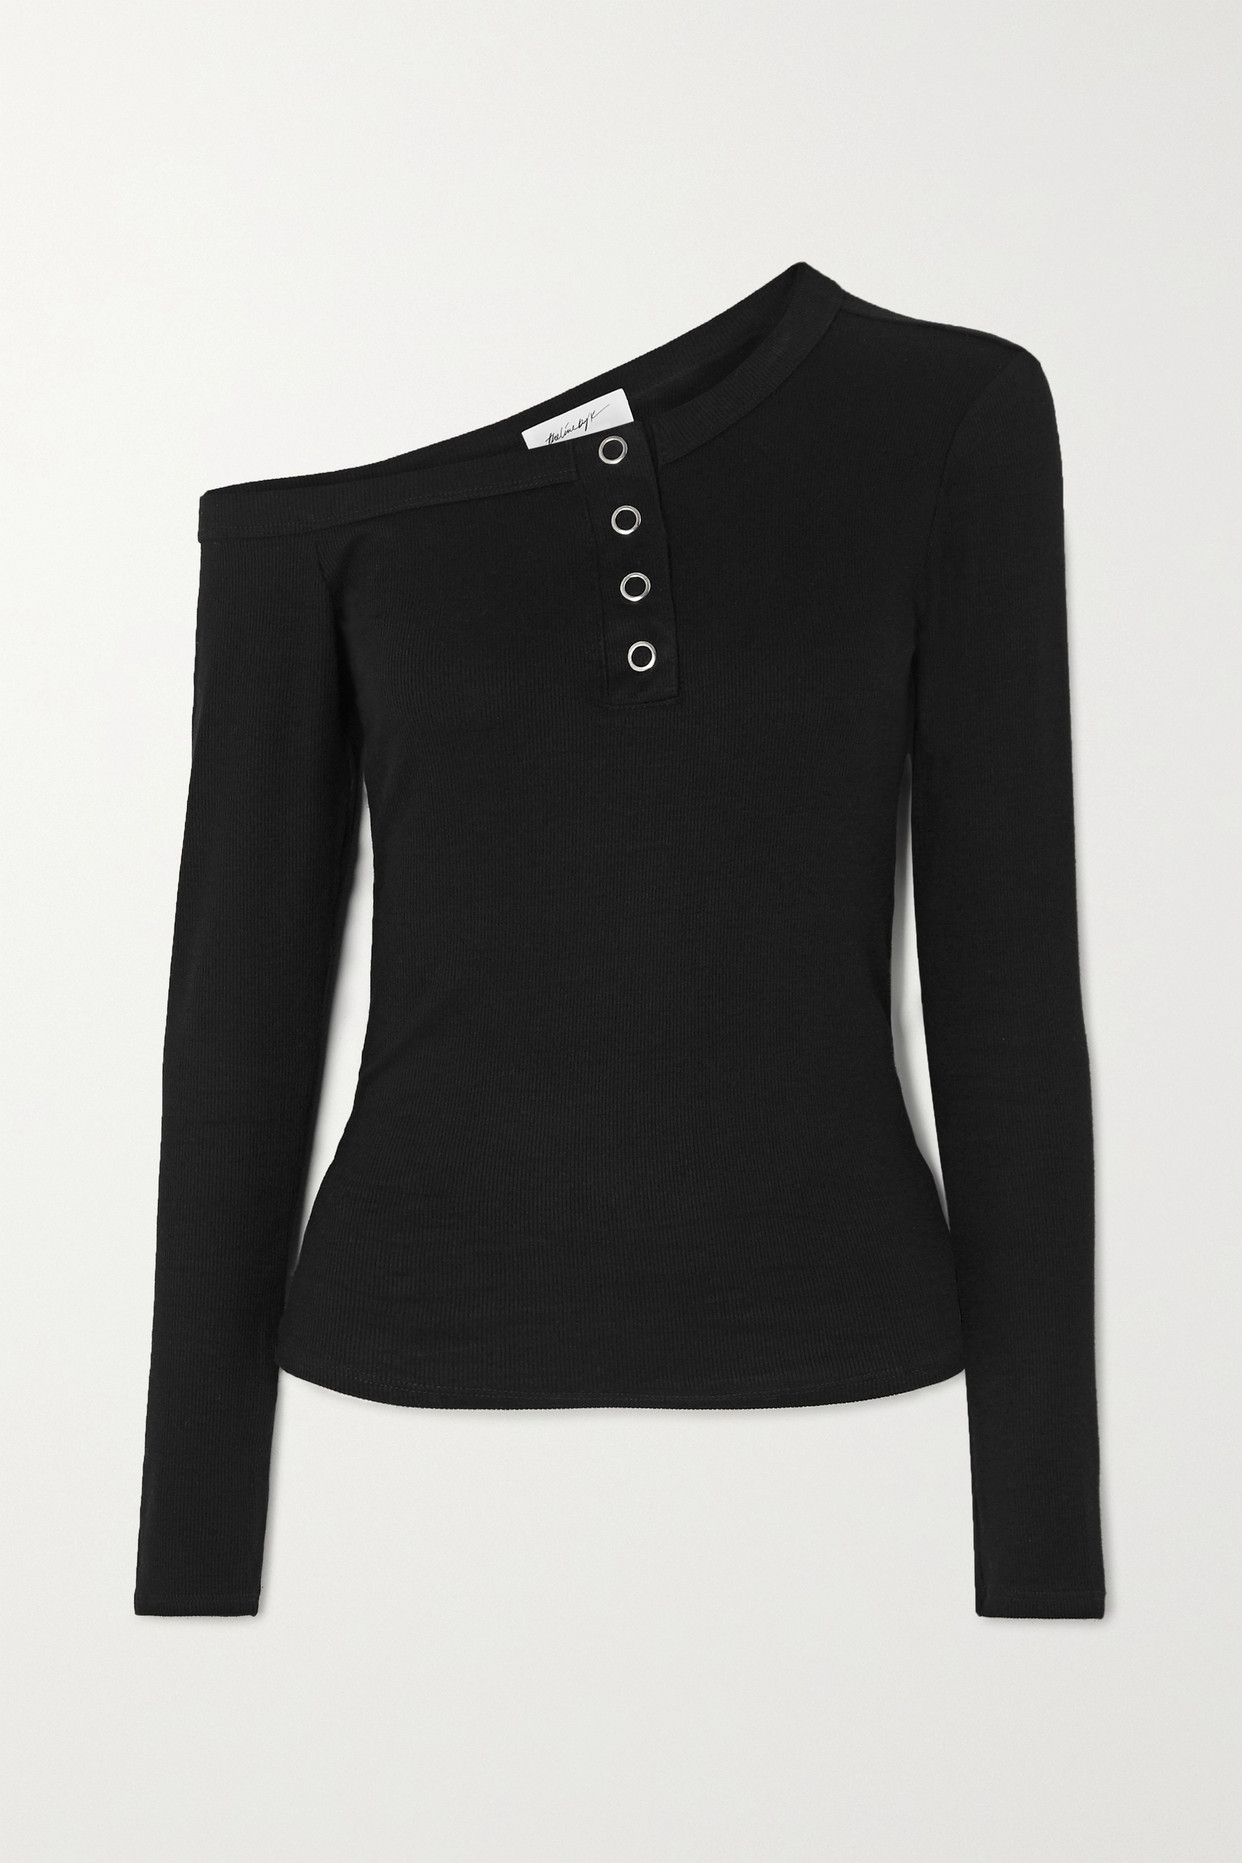 THE LINE BY K - Harley Off-the-shoulder Ribbed Jersey Top - Black - x small